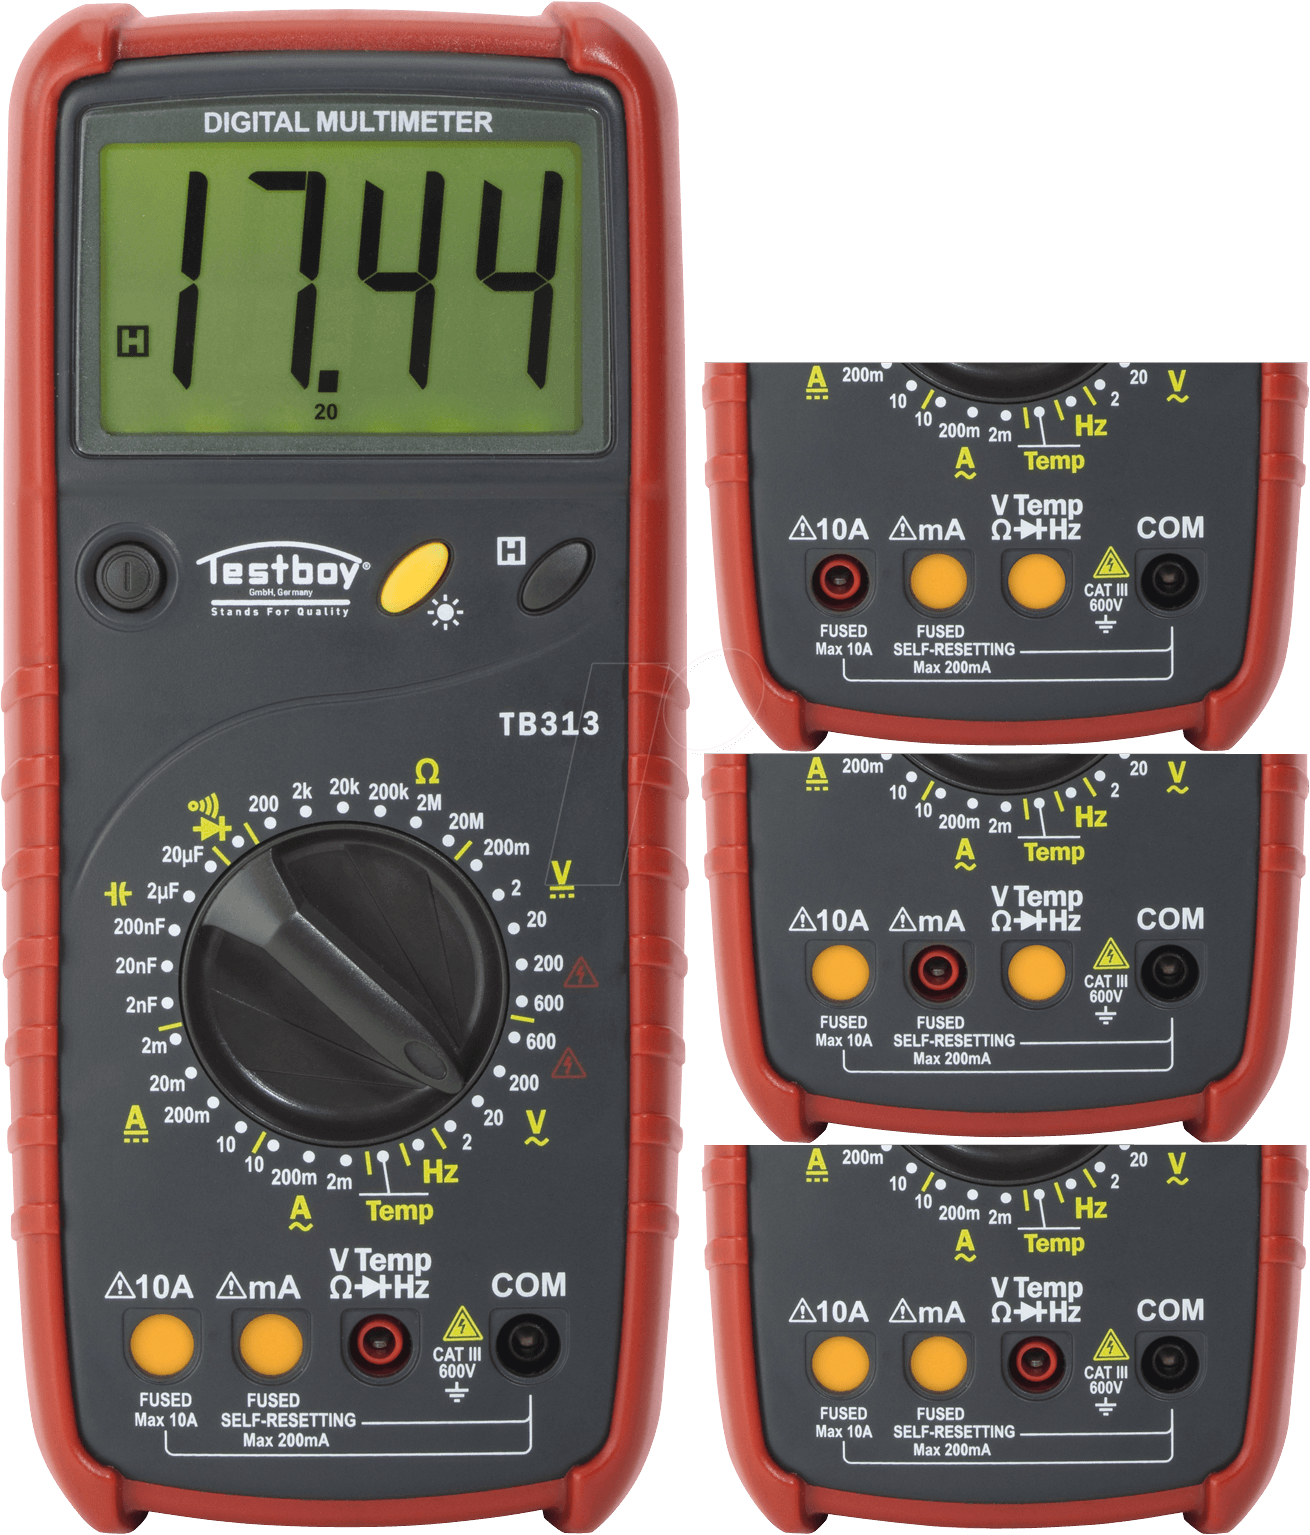 Testboy Testboy TB 313-Digital Multimeter 20 x 28 50 x 8 50 mm